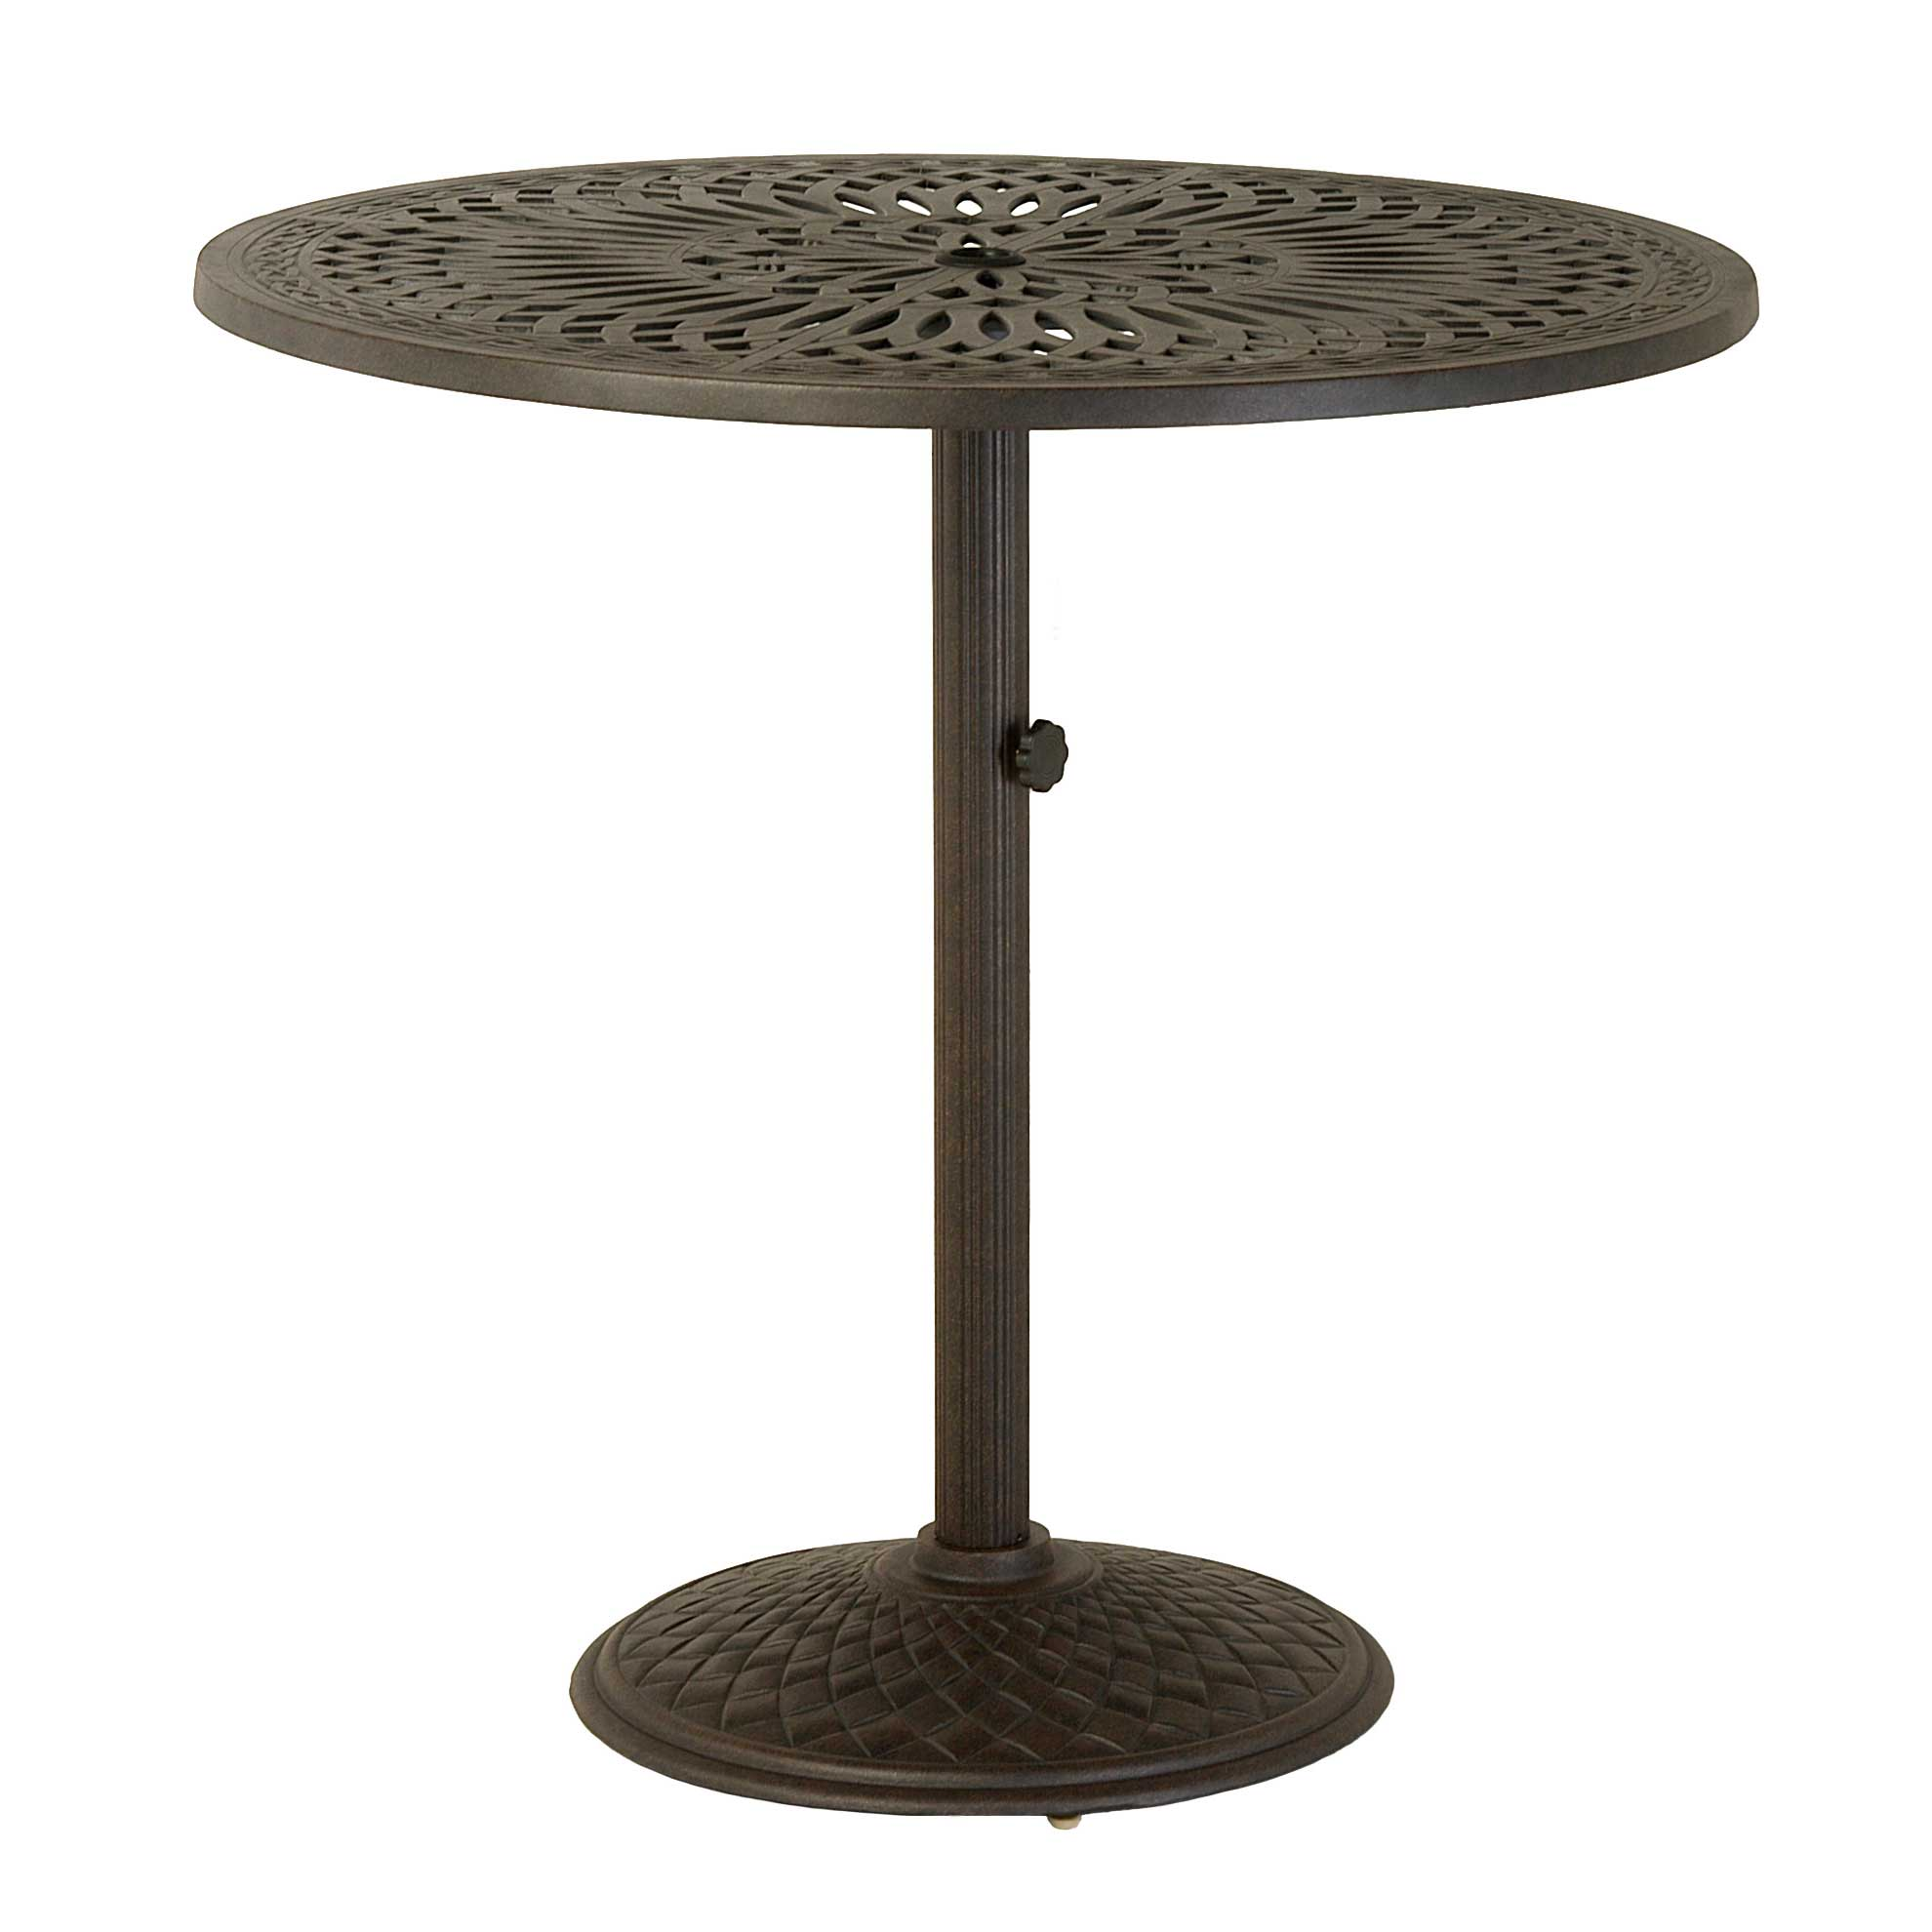 hanamint fair round umbrella side table outdoor furniture pedestal bar counter dining accents rattan end tables with glass top metal accent cream tablecloth moroccan lamp slim